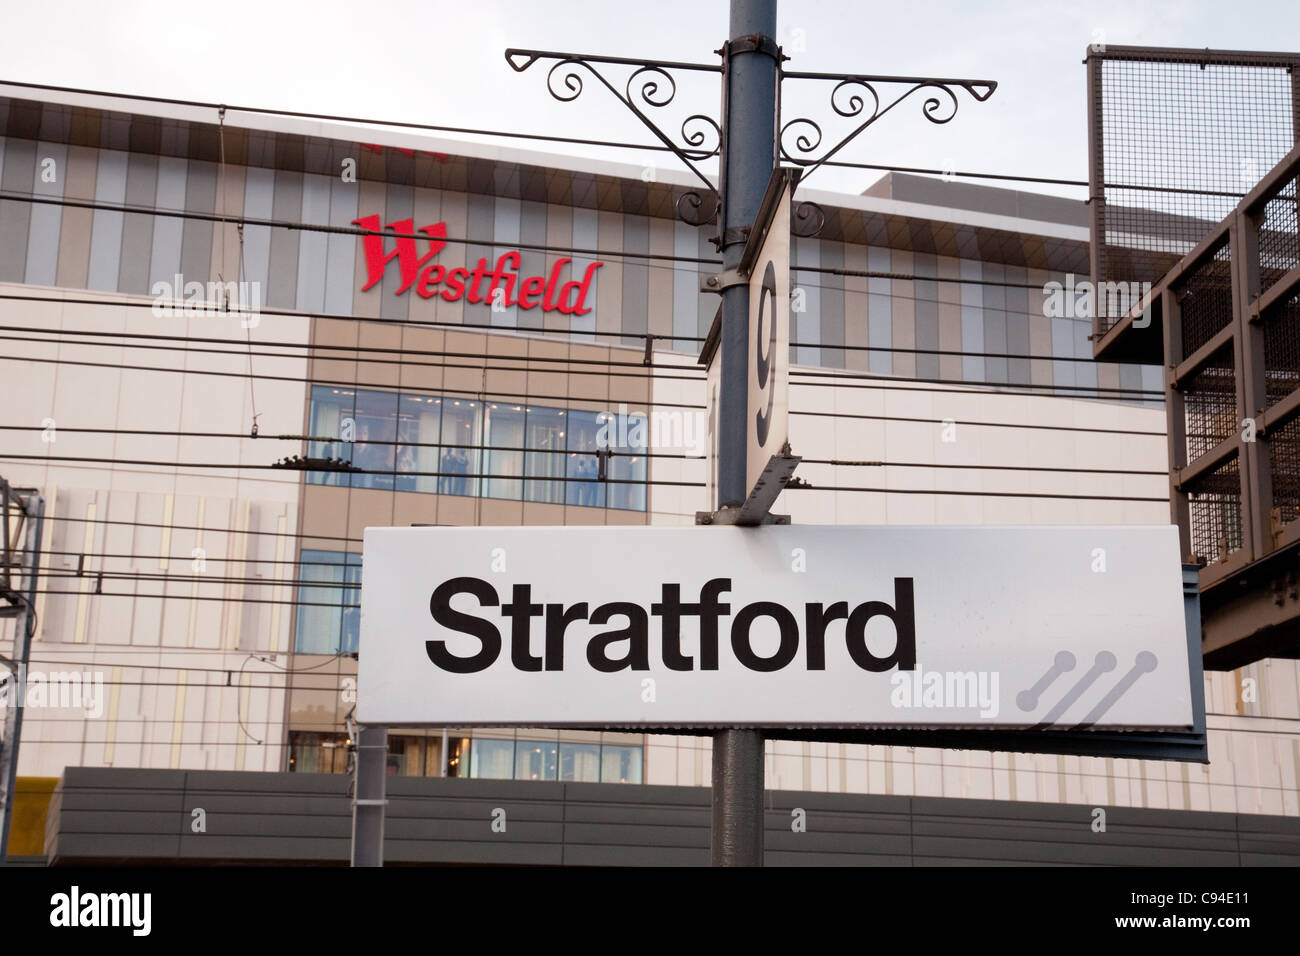 Stratford station sign east London, with Westfield shopping centre sign in the background, London UK Stock Photo